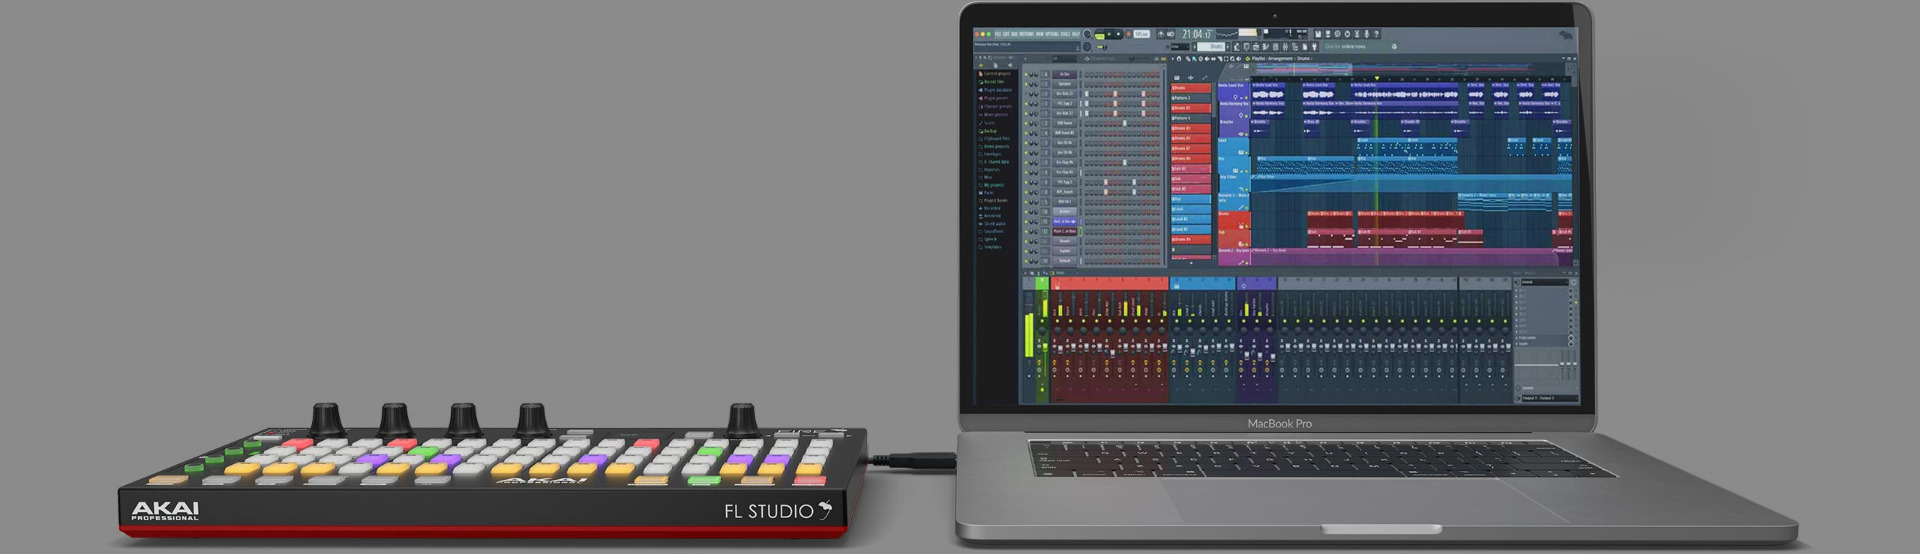 Fl studio fruity loop free download | FL Studio 12 Crack